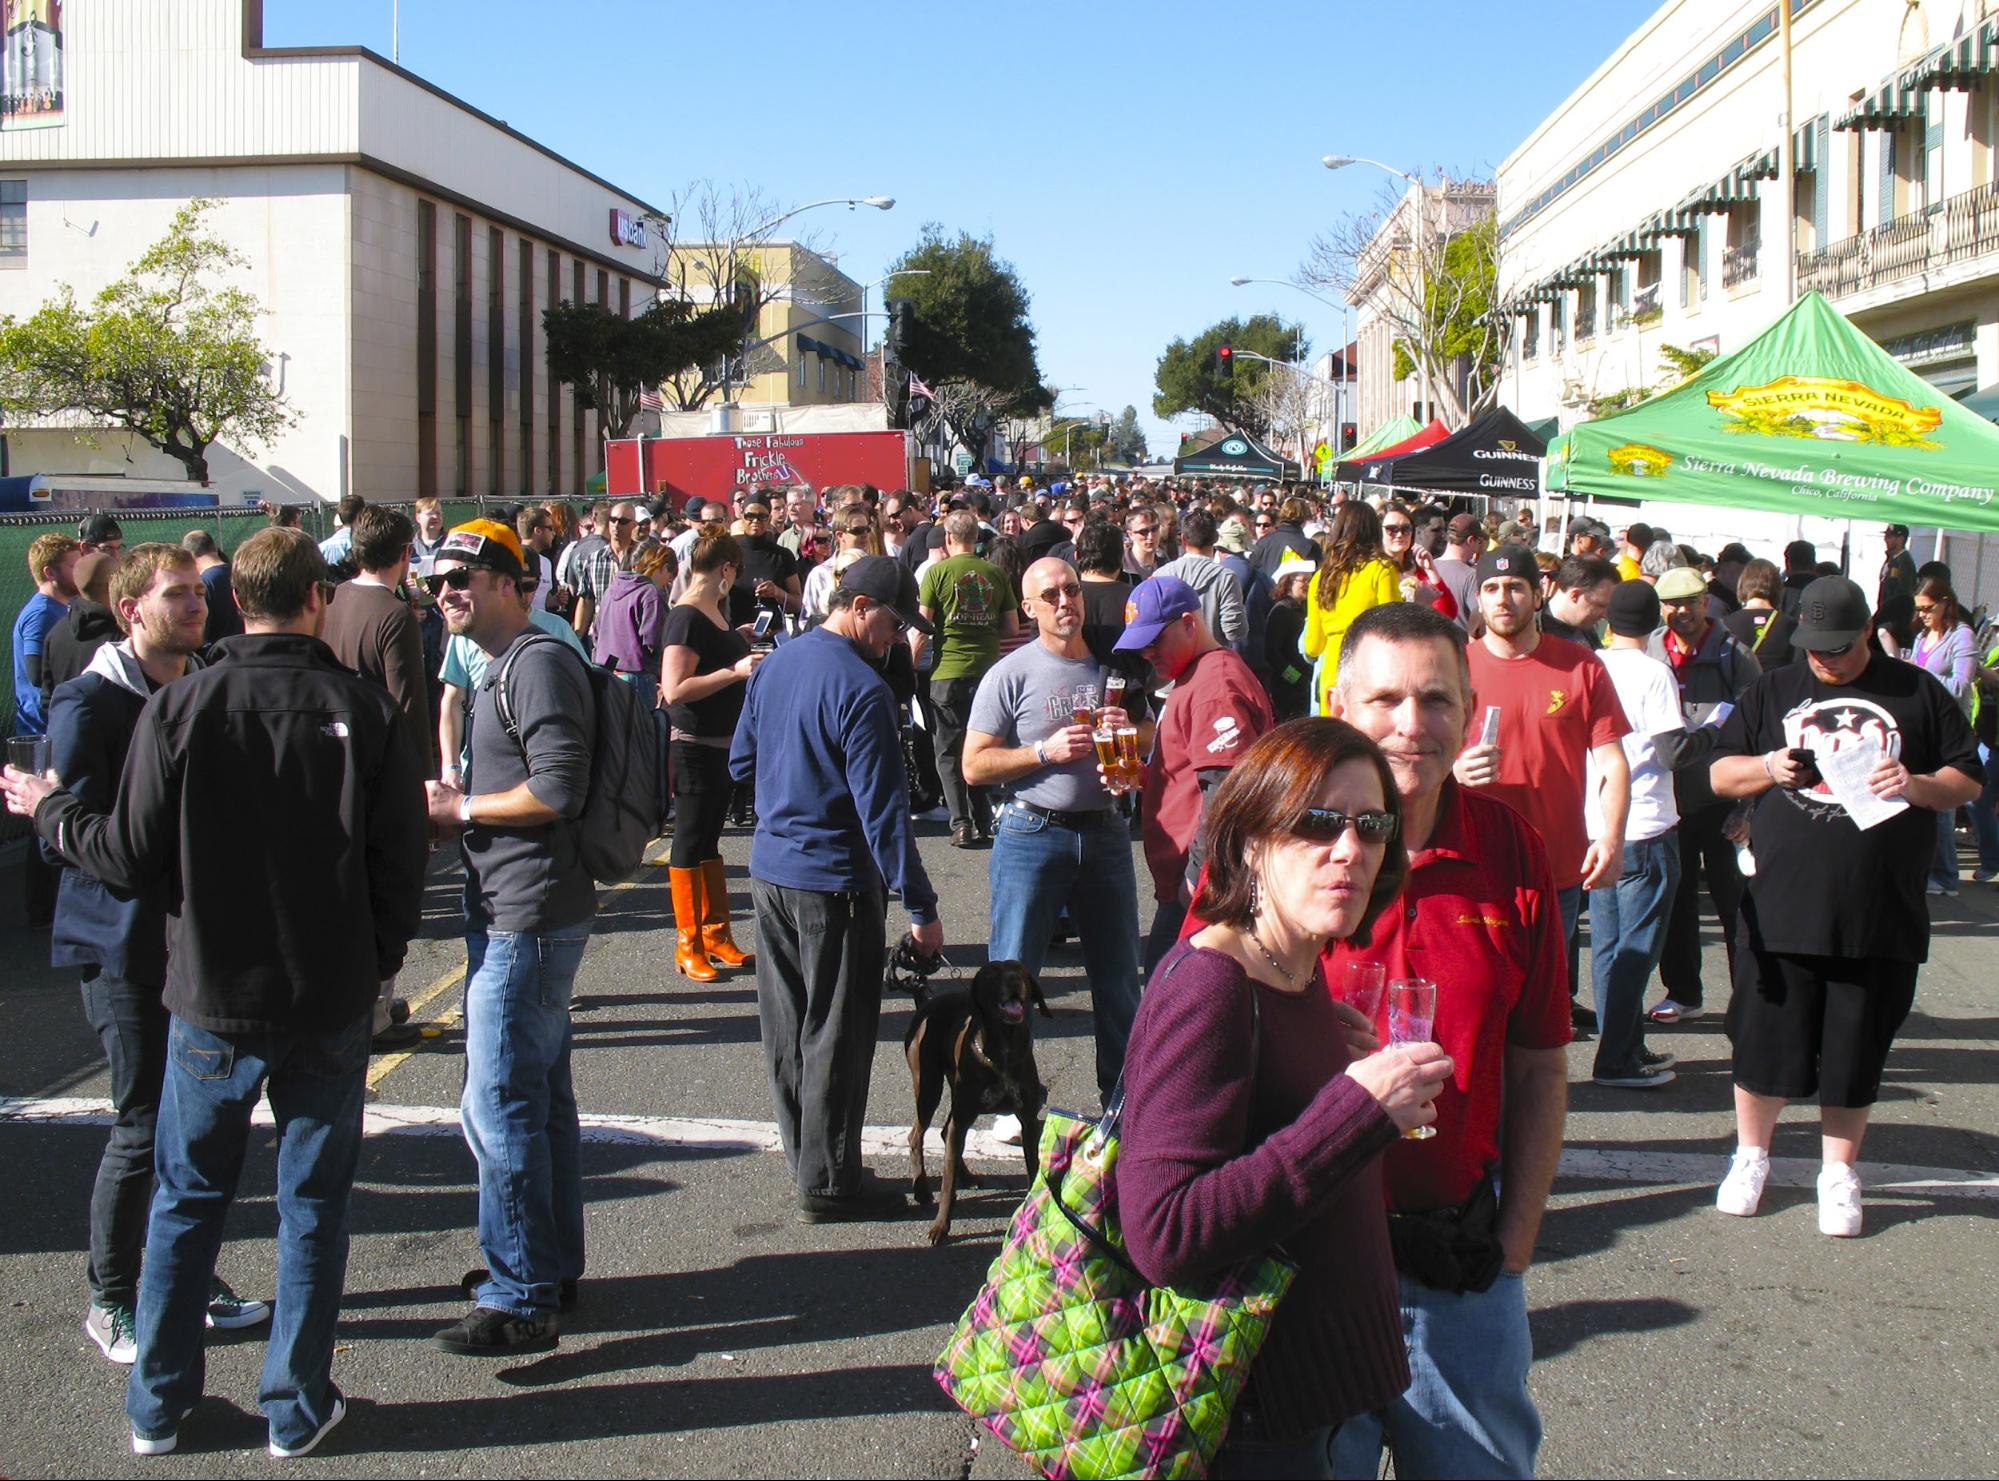 The Bistro's Double IPA Festival predates SF Beer Week and is one of its cherished traditions. Photo by Gail Ann Williams